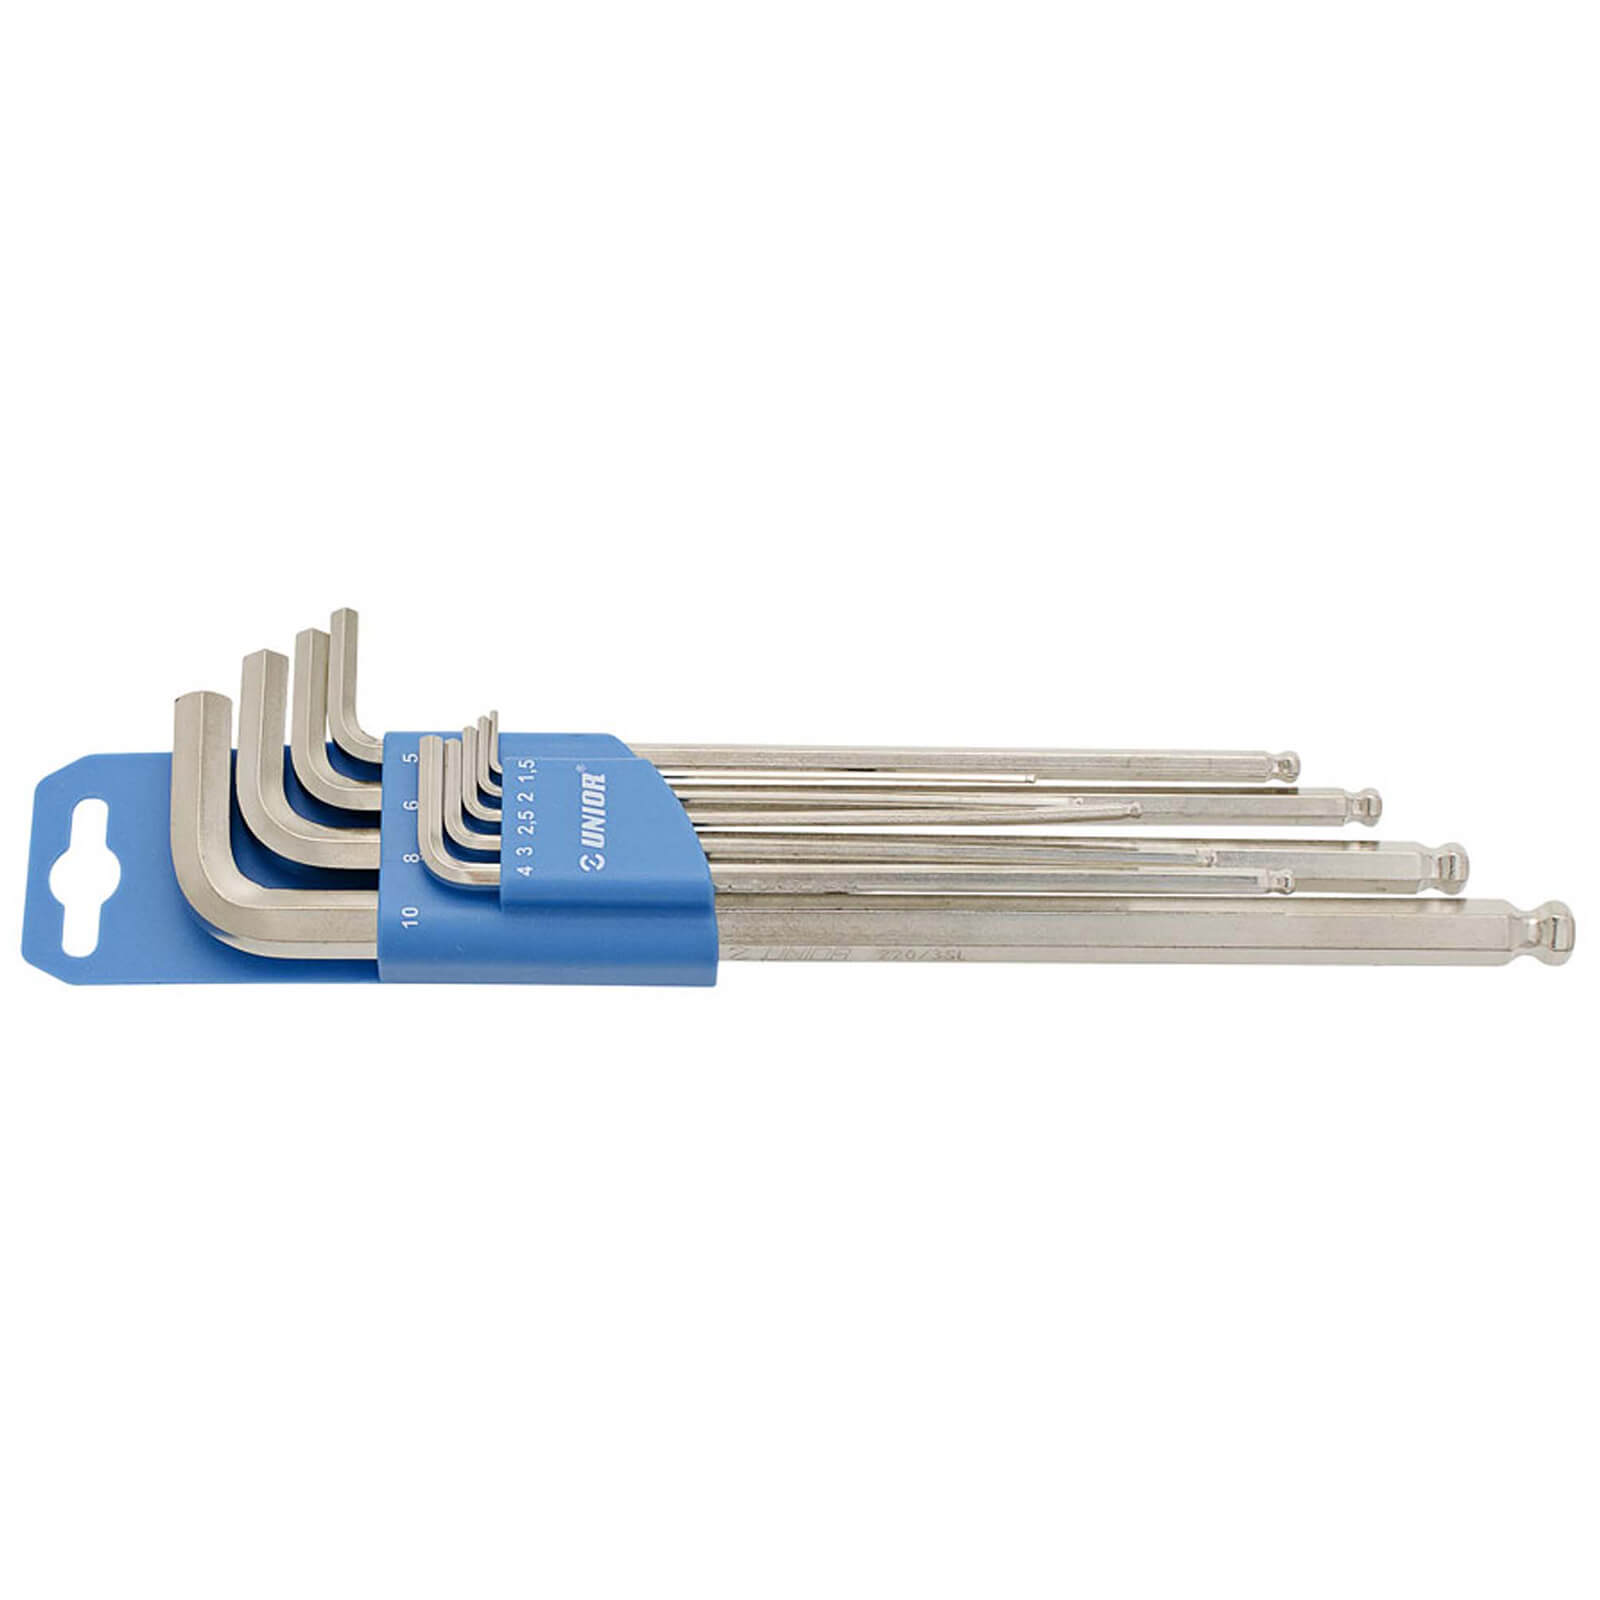 Unior Ball End Allen Key Set